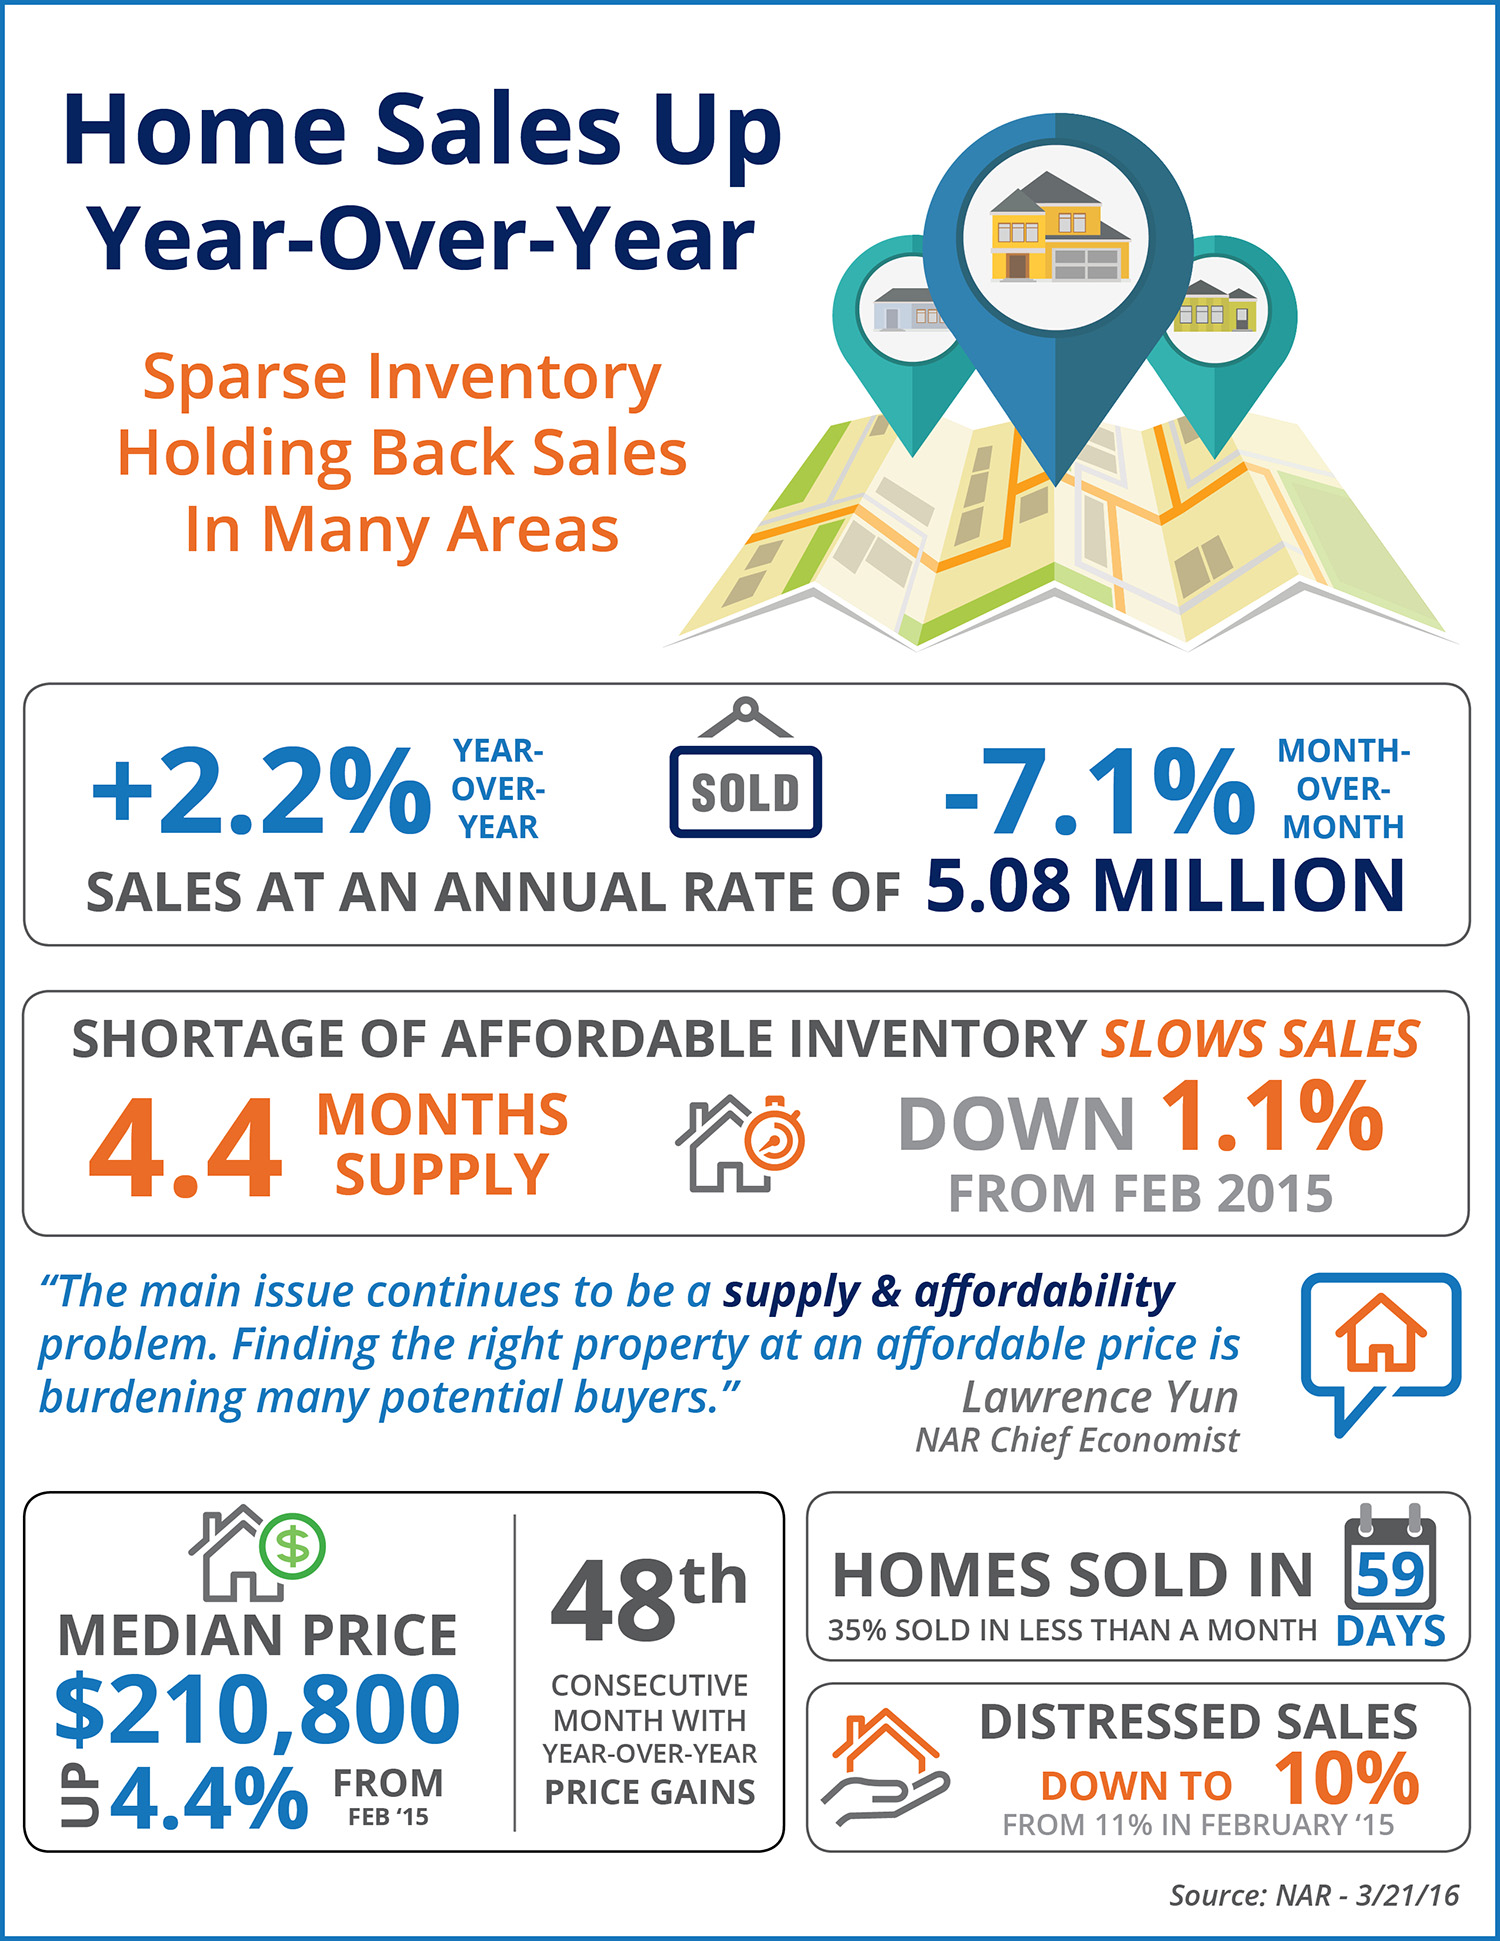 Home Sales Up Year-Over-Year   Simplifying The Market